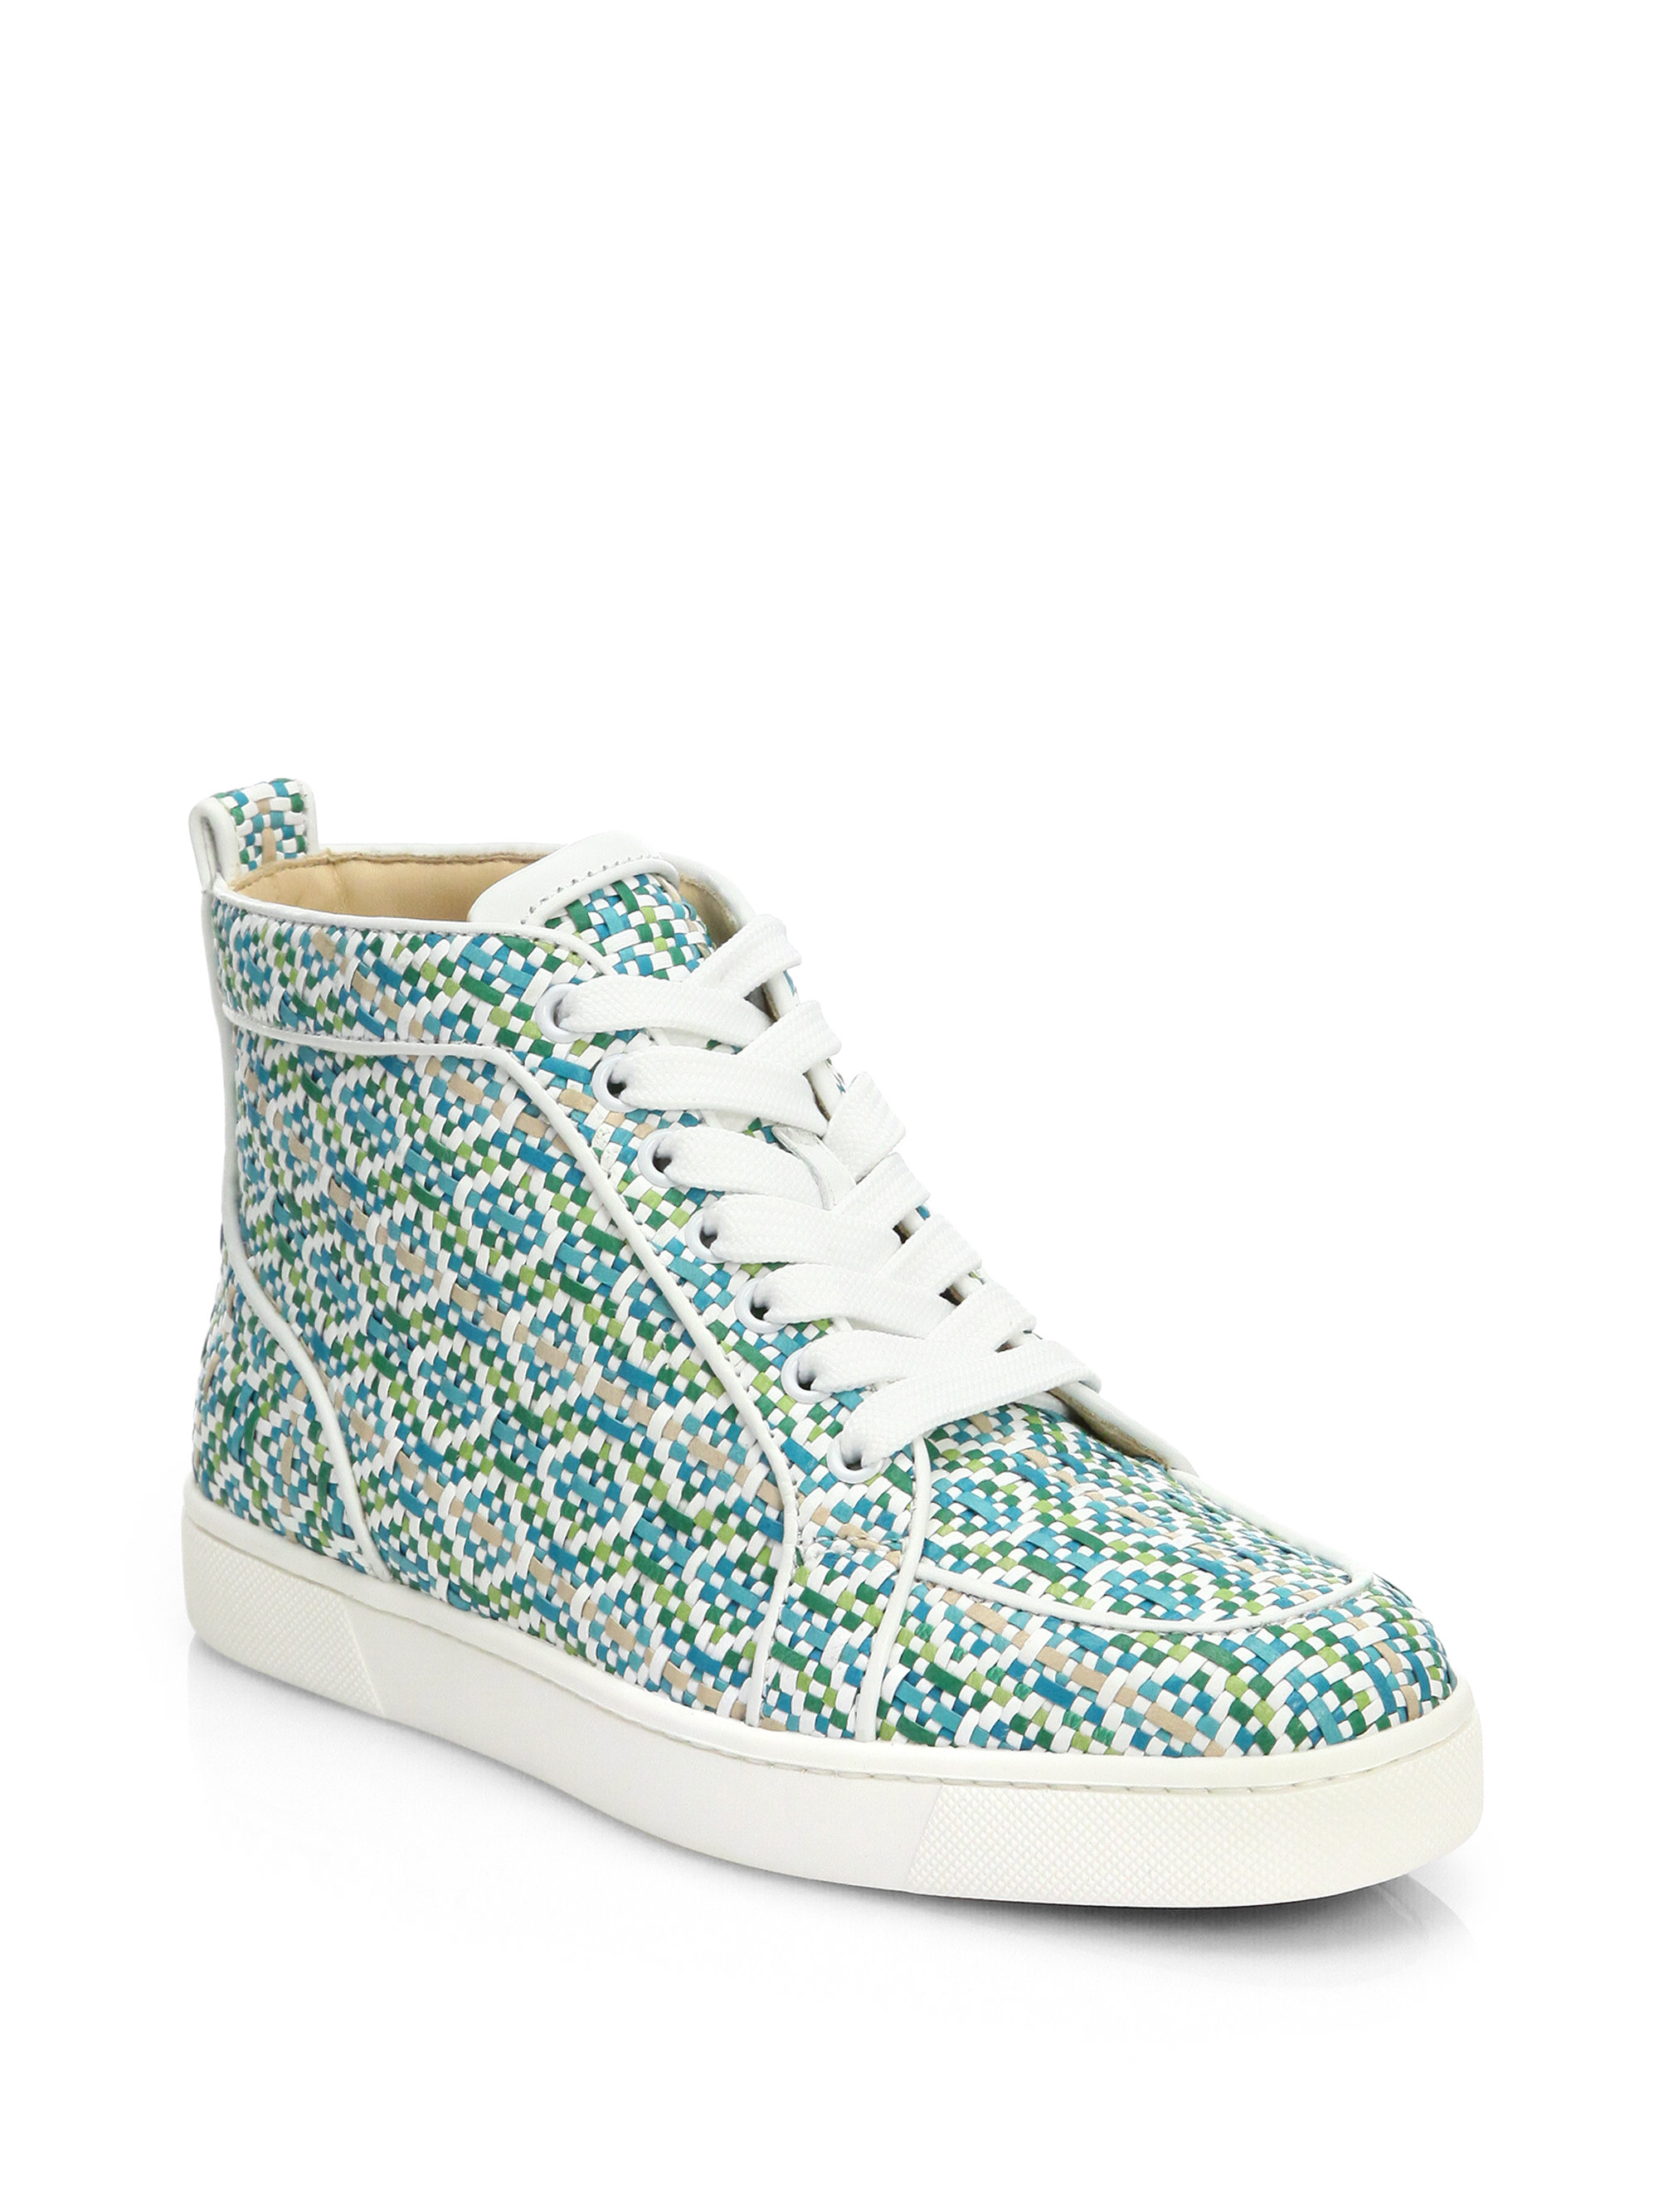 Lyst - Christian Louboutin Rantus Woven Leather Hightop Sneakers 9f505c9416